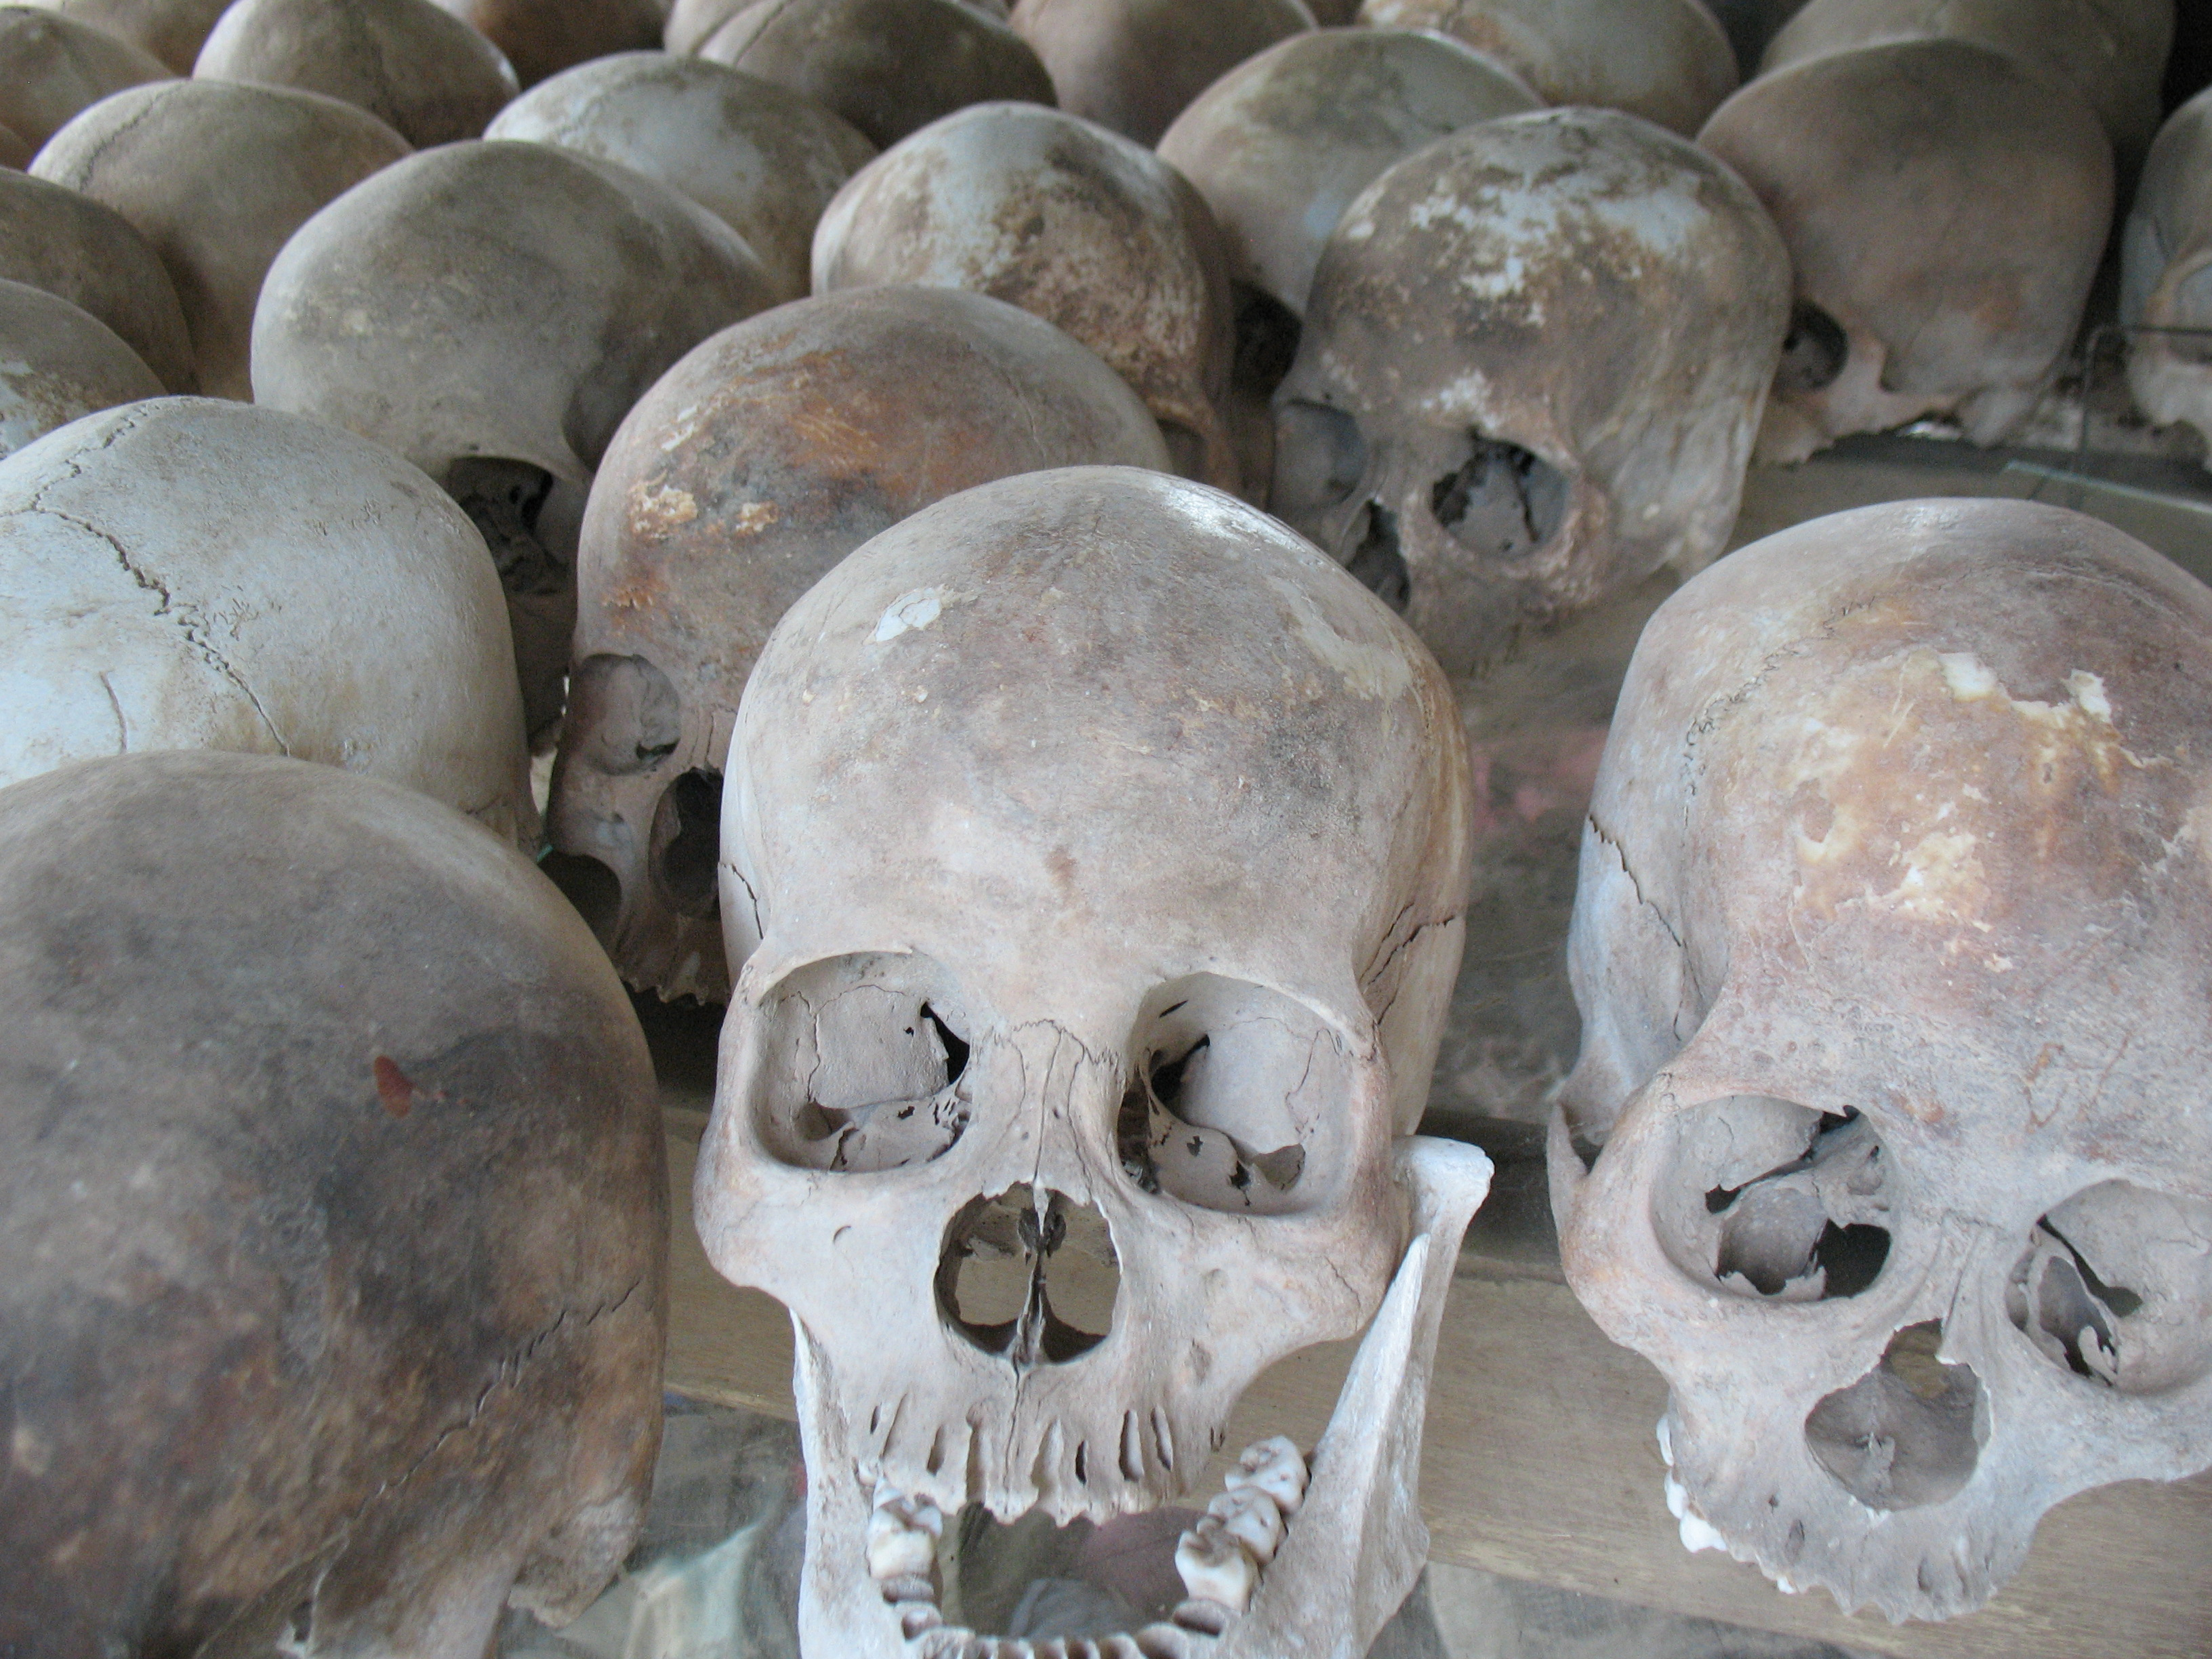 Just few of the many skulls